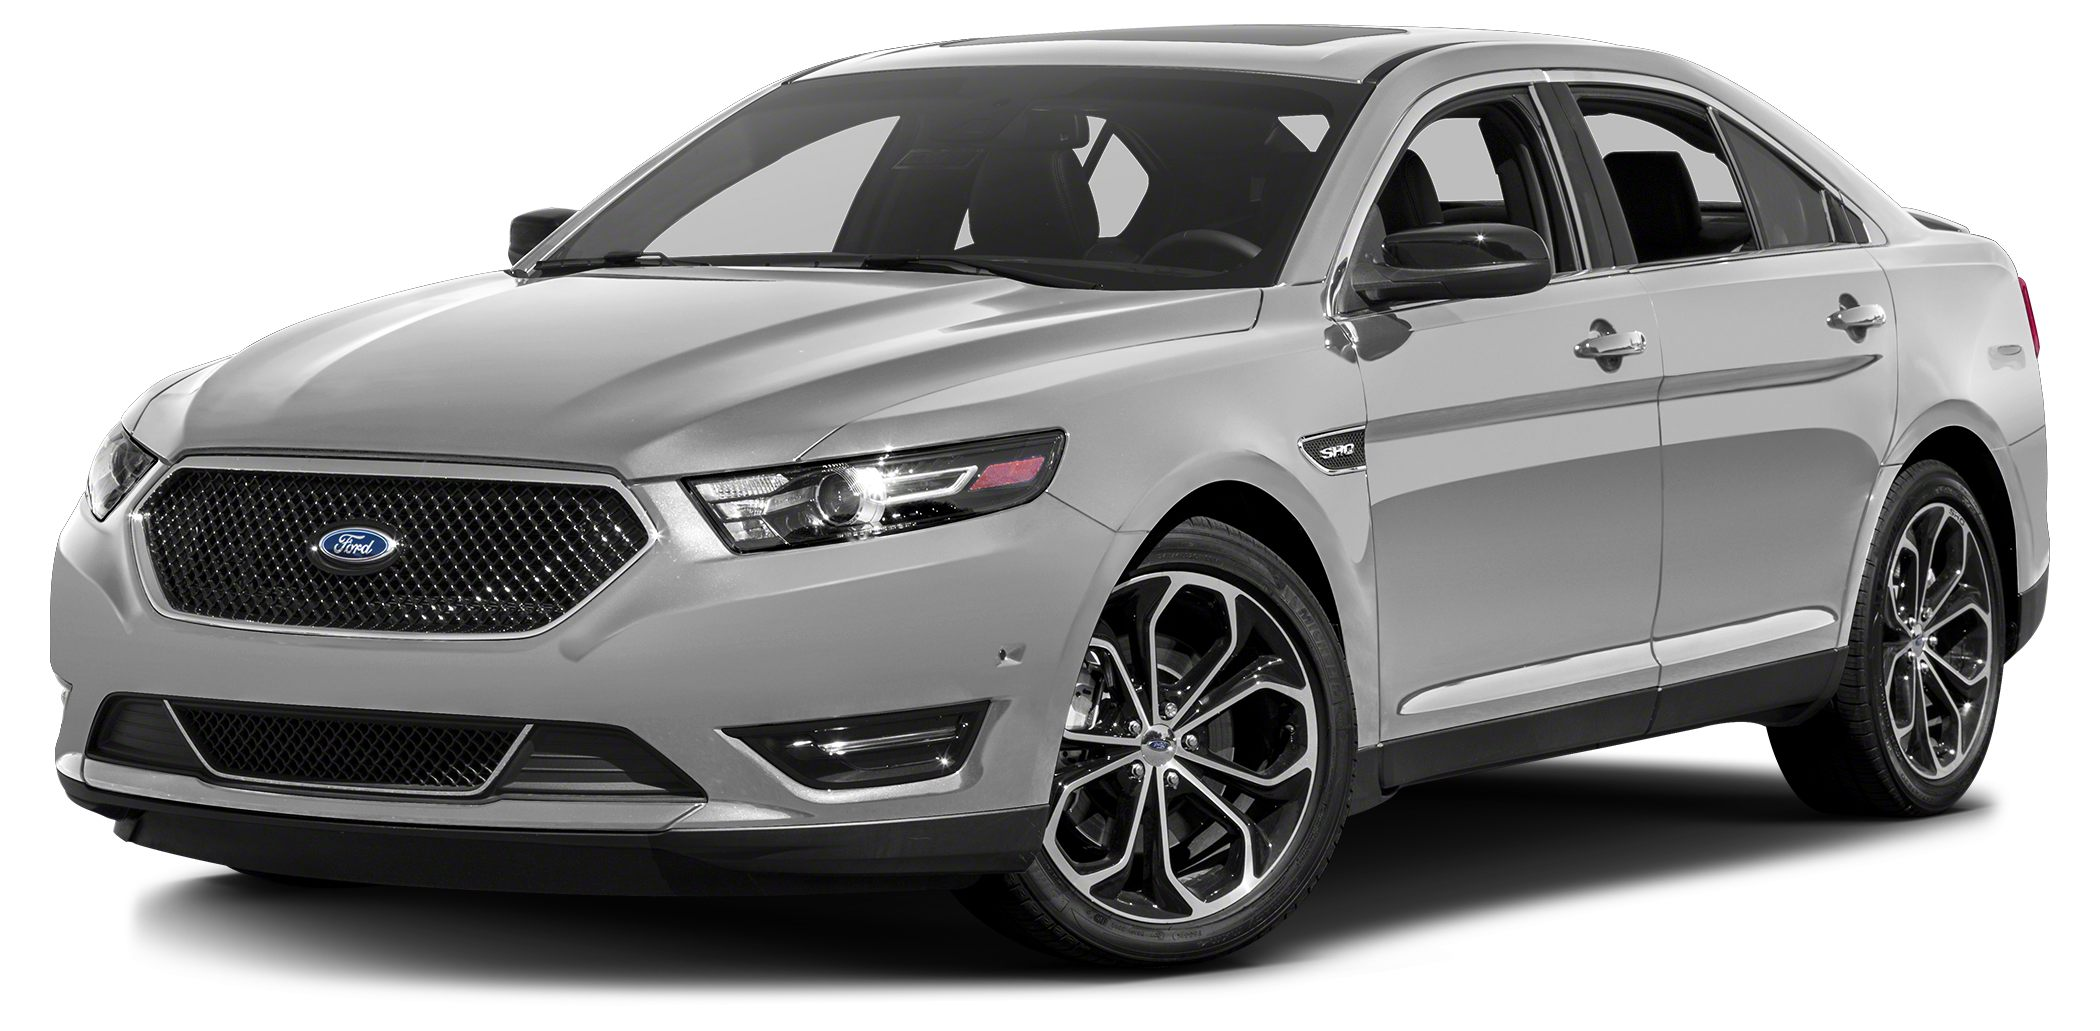 2016 Ford Taurus SHO Miles 1618Color Chrome Stock GG101912 VIN 1FAHP2KT8GG101912